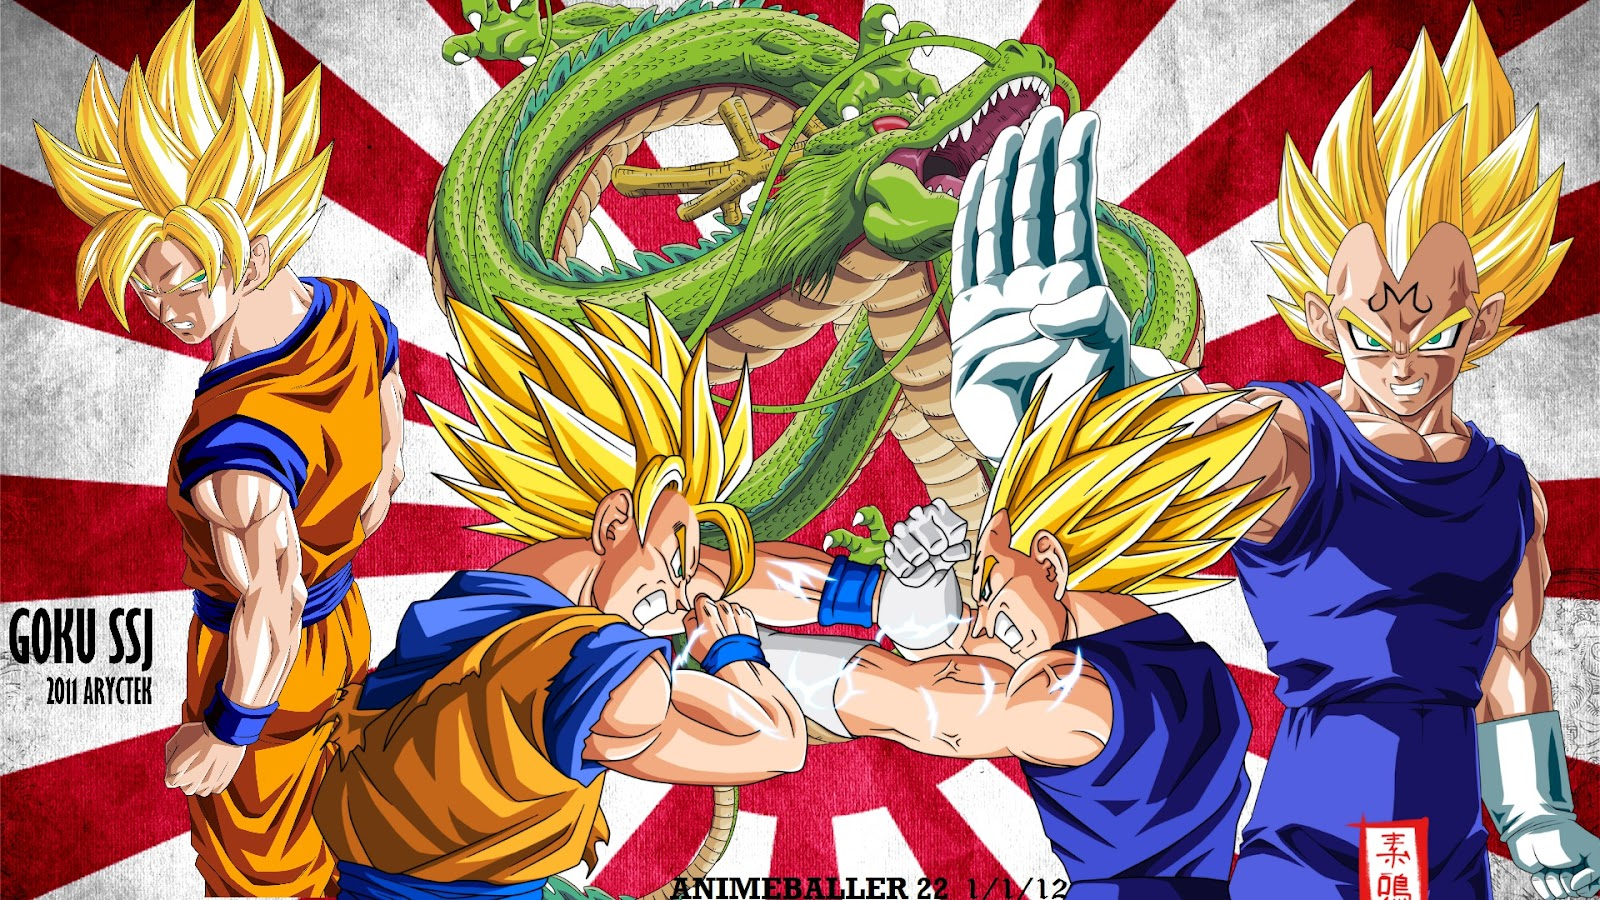 Wallpapers de anime varios - Dragon ball z majin vegeta wallpaper ...